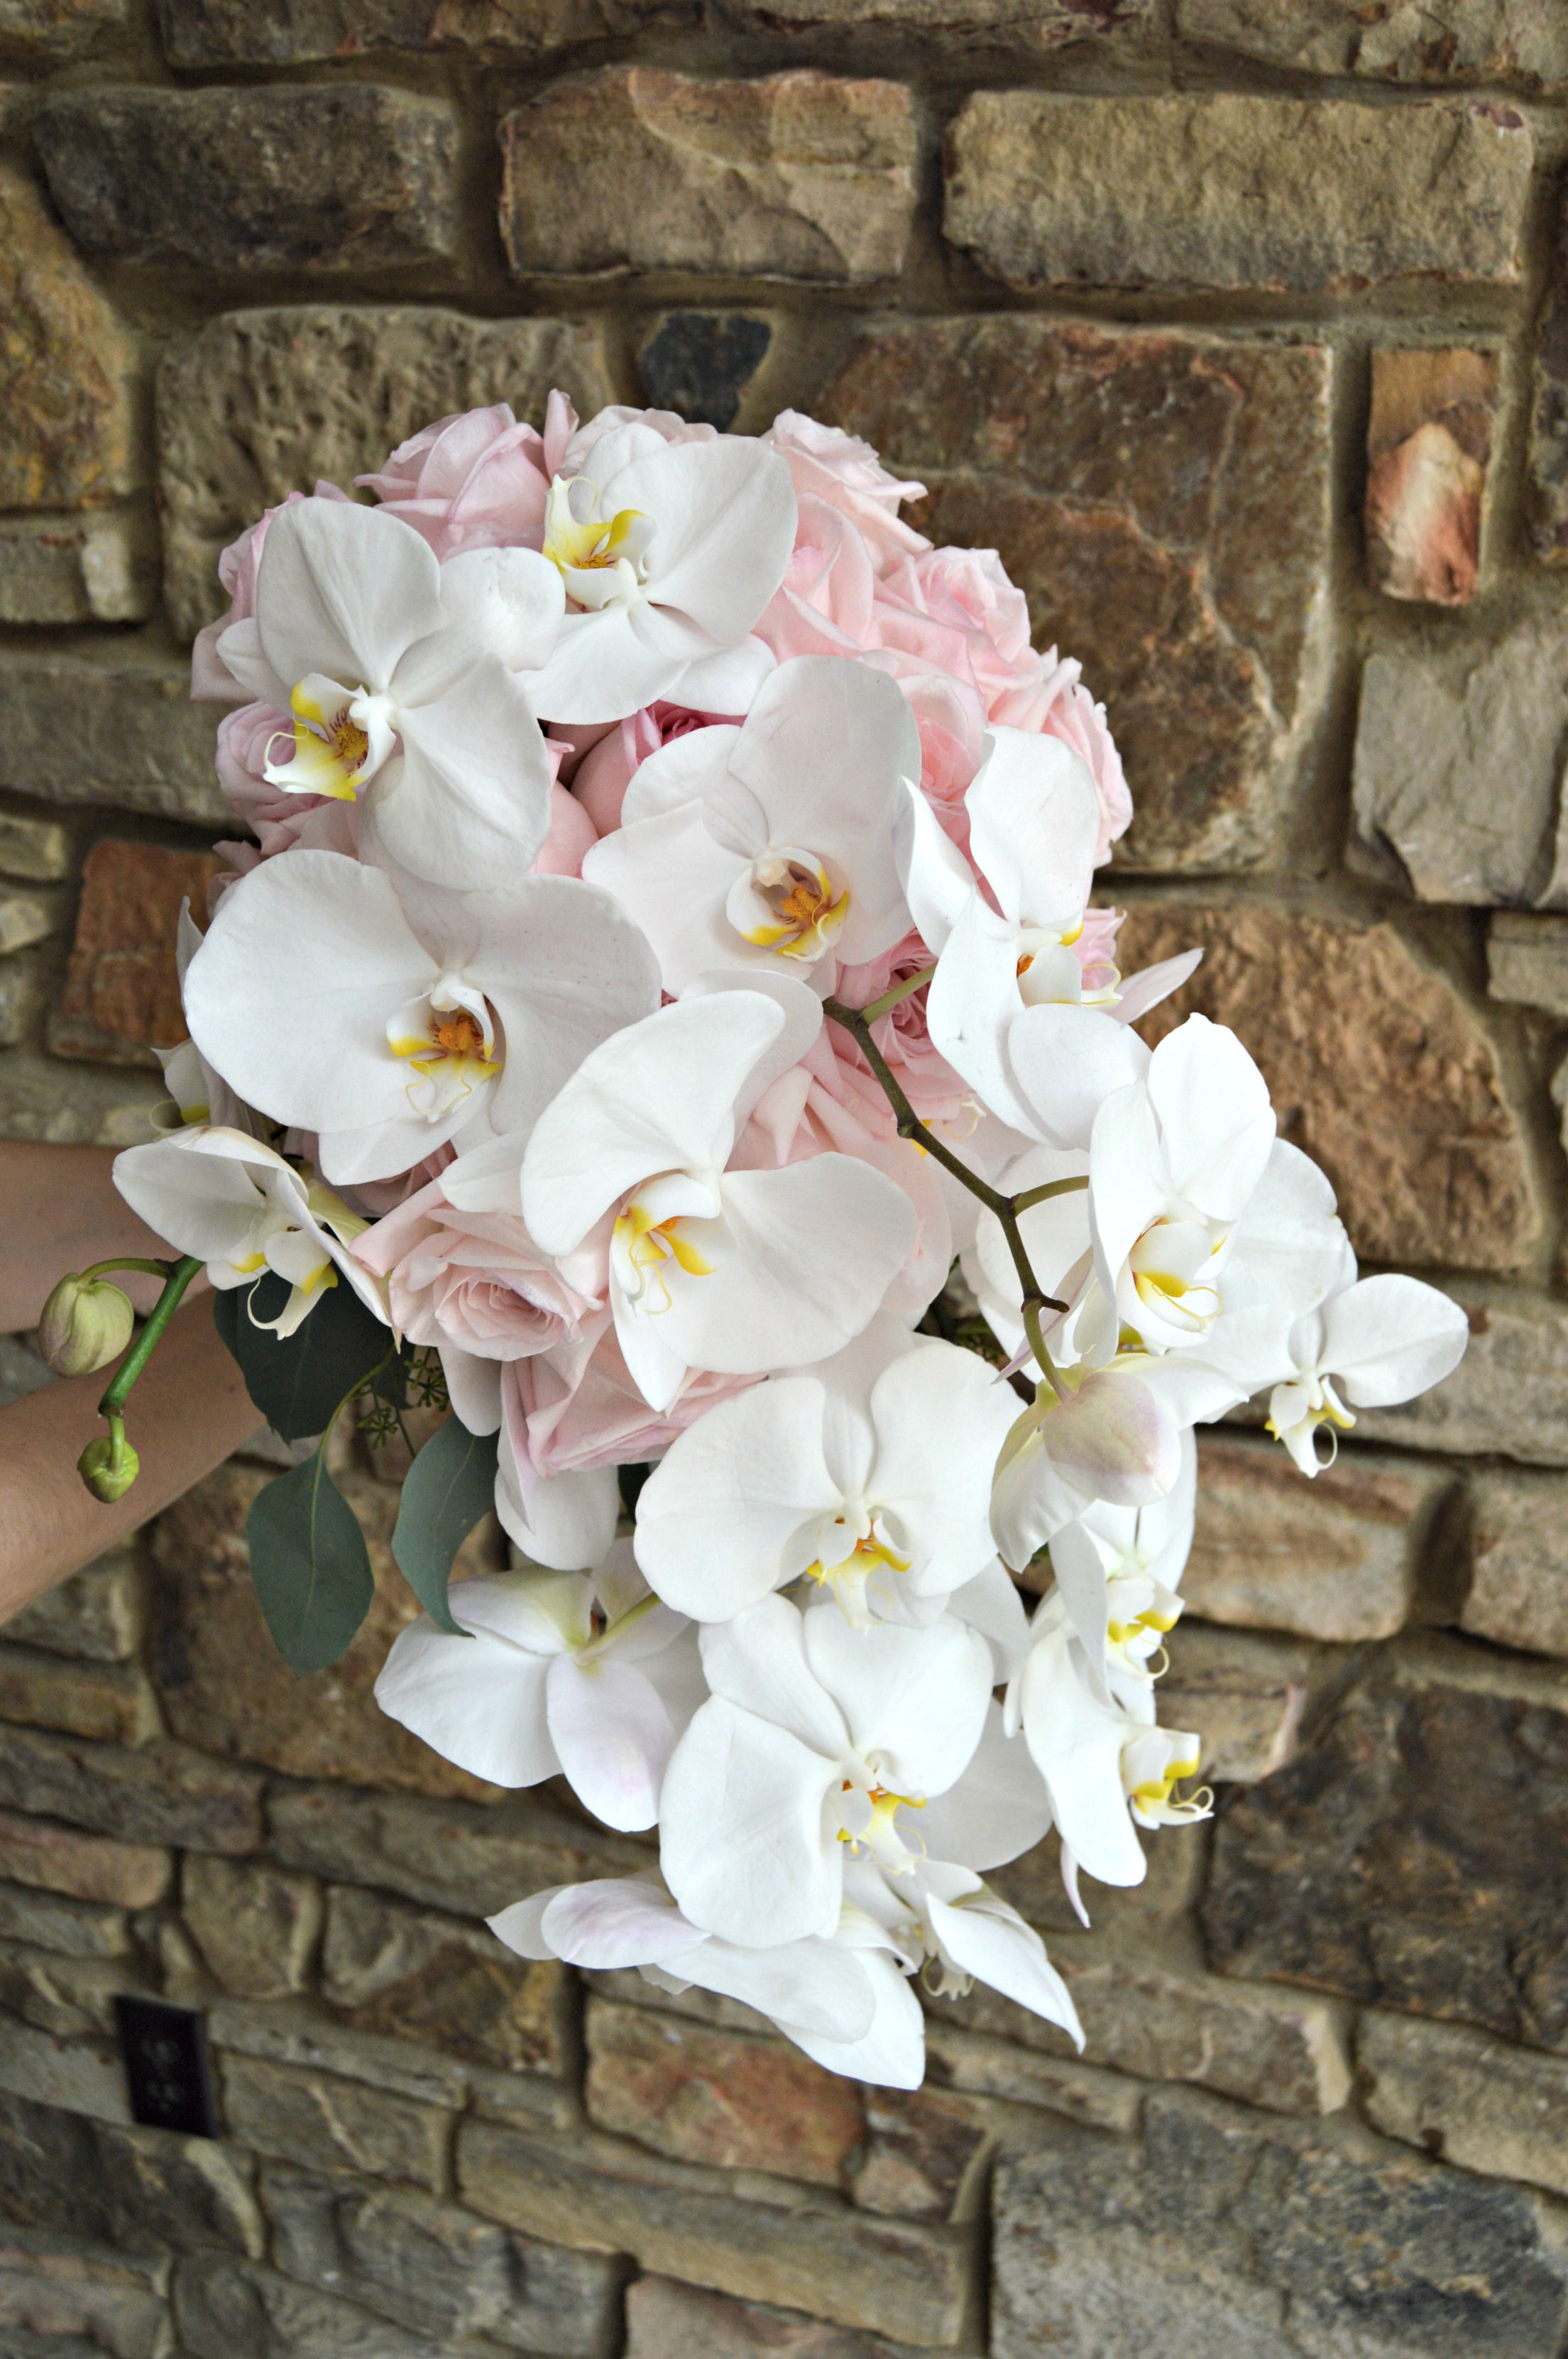 Pink Rose And White Phalaenopsis Orchid Bouquet Makes A Dramatic